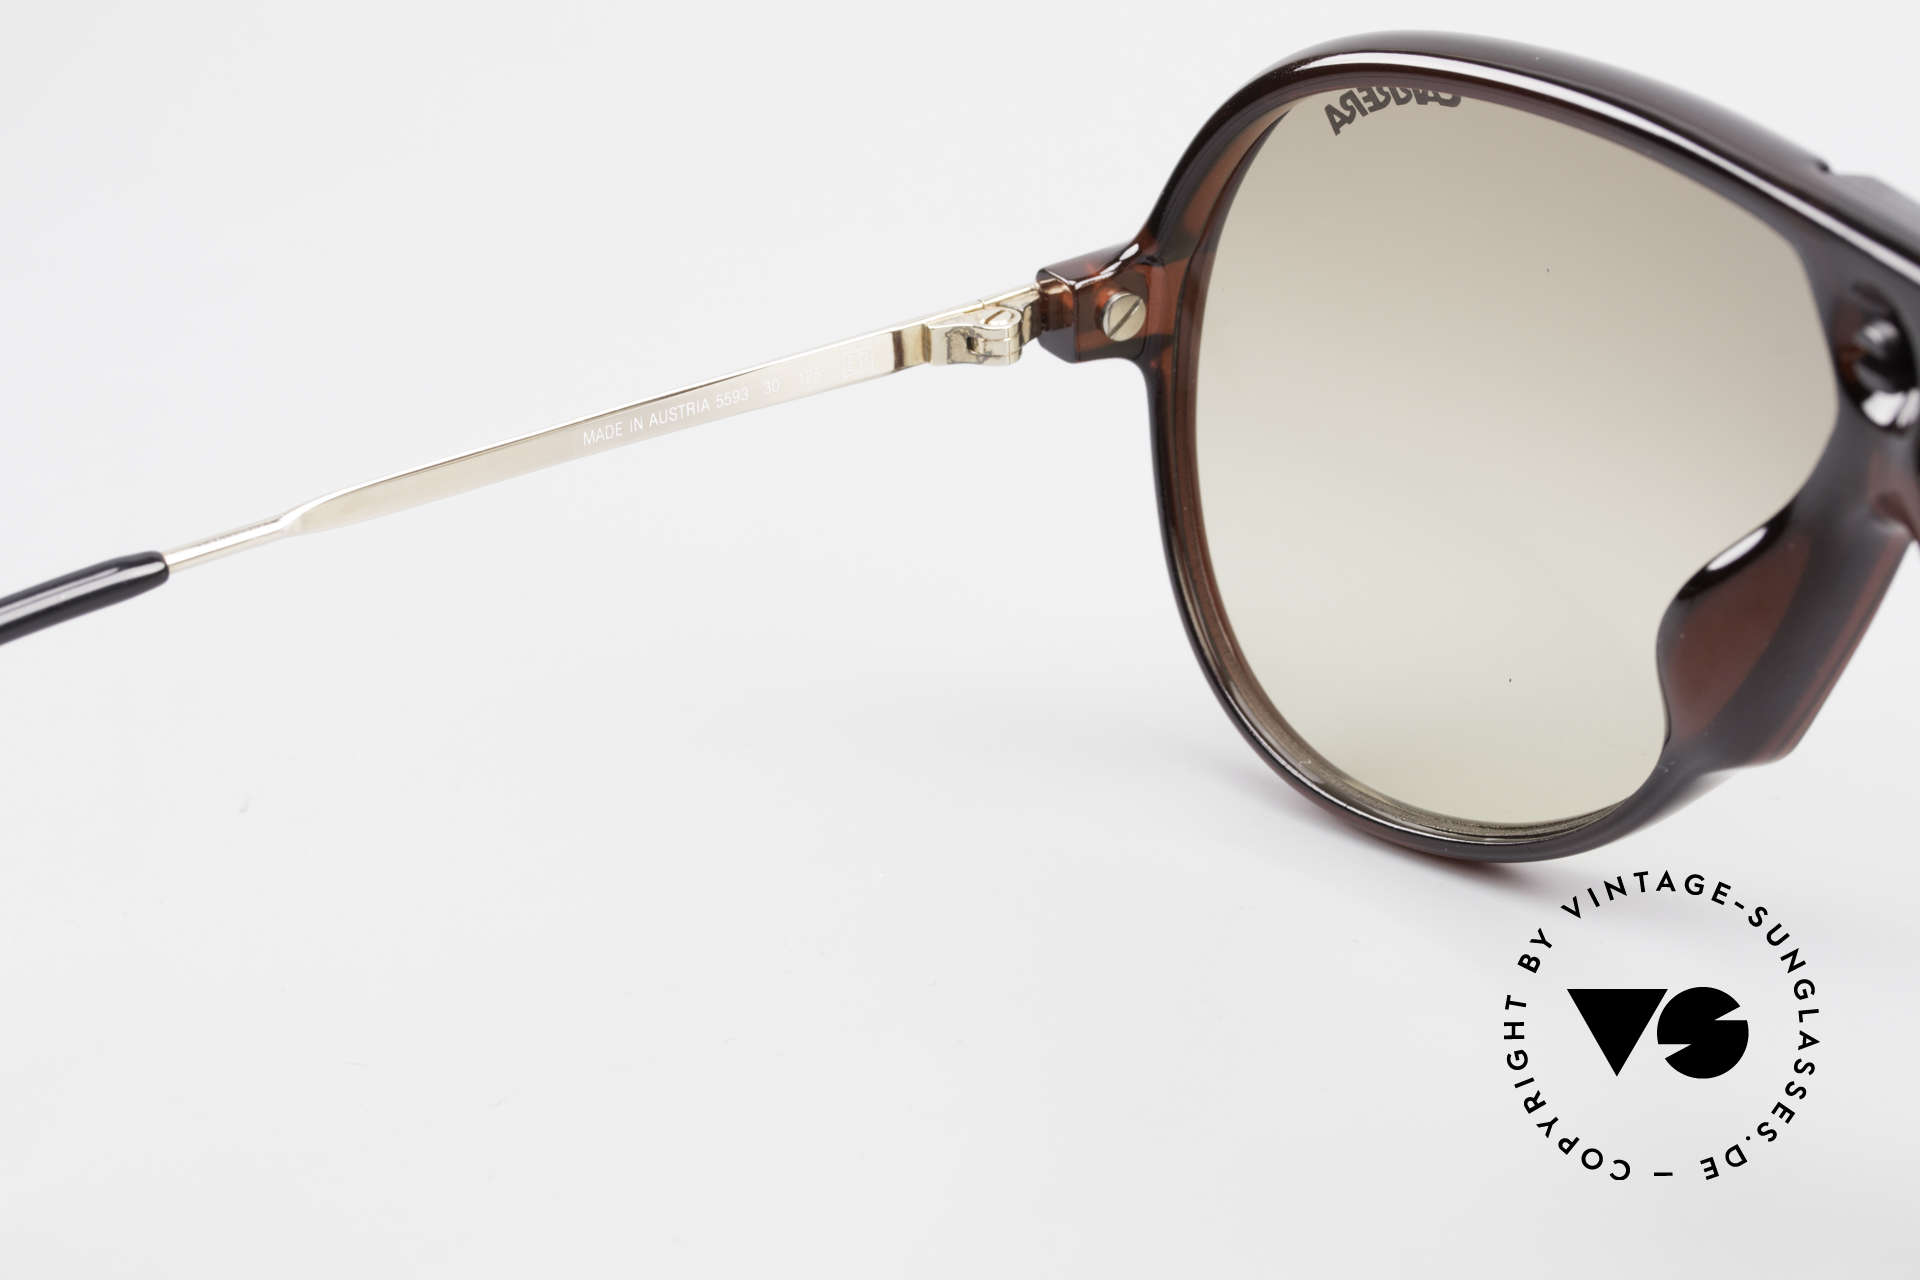 Carrera 5593 80's Aviator Sports Sunglasses, new old stock (like all our 1980's Carrera sunnies), Made for Men